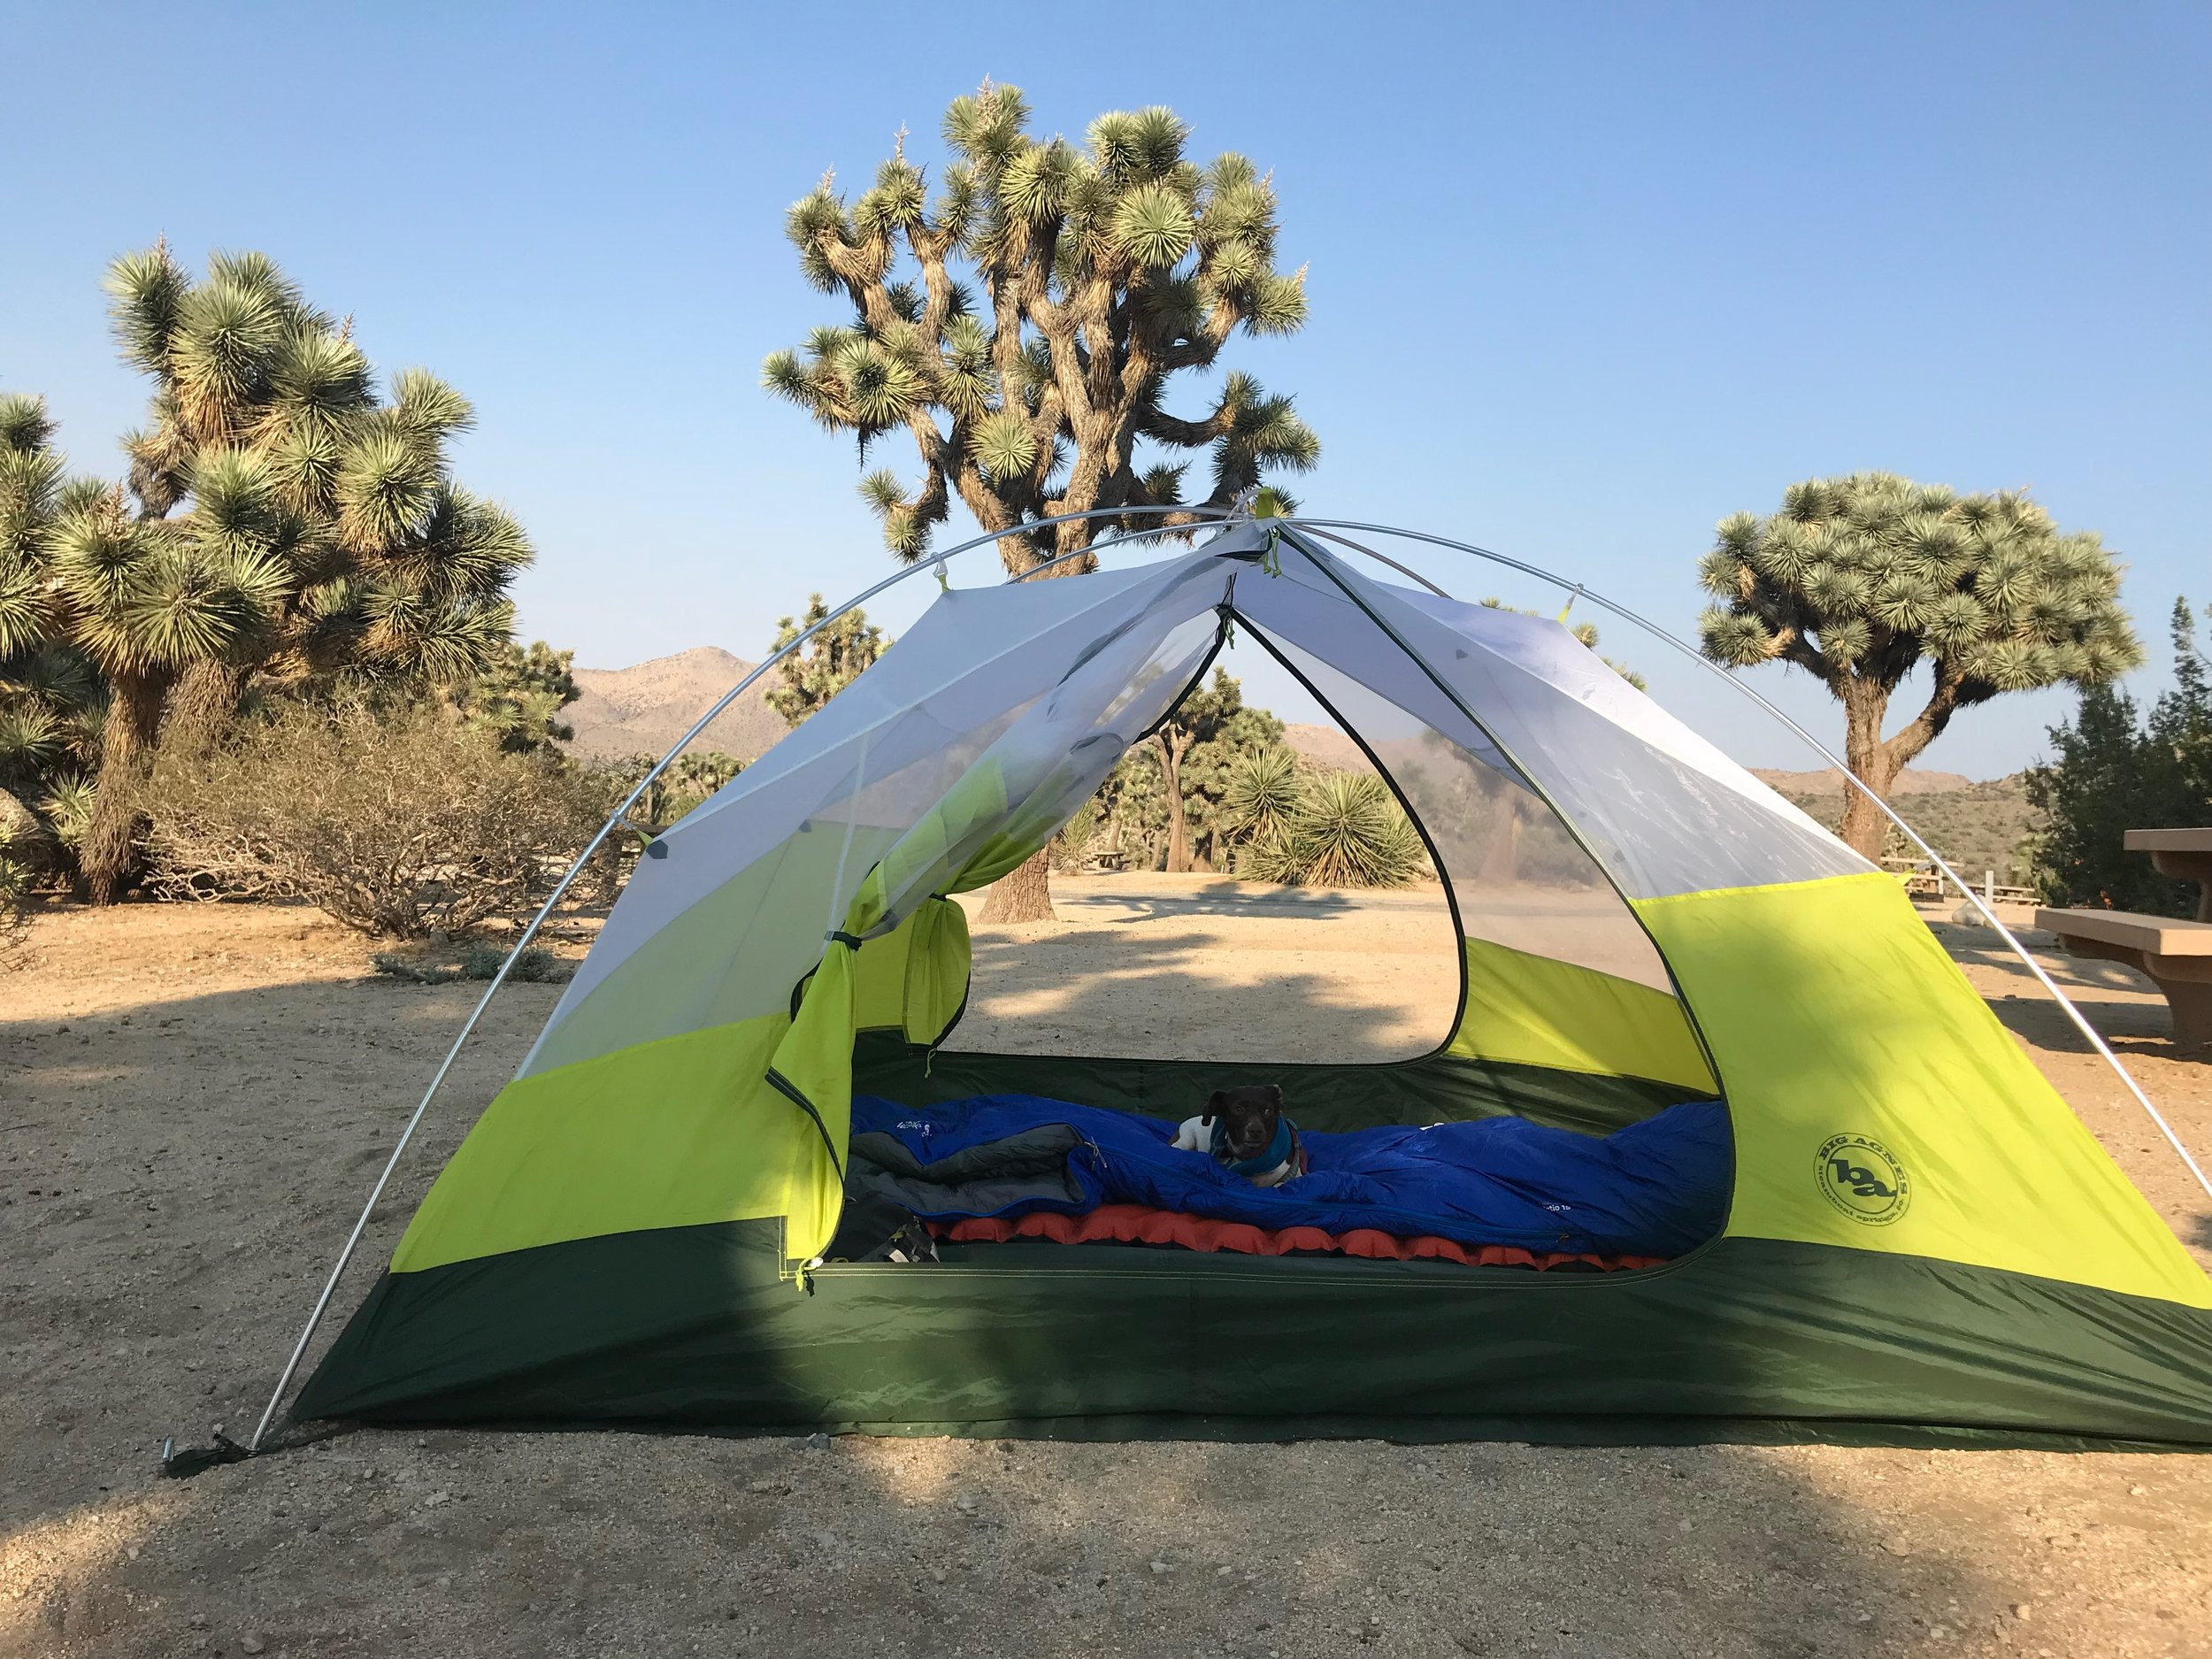 Tents, Joshua Trees and Moo.